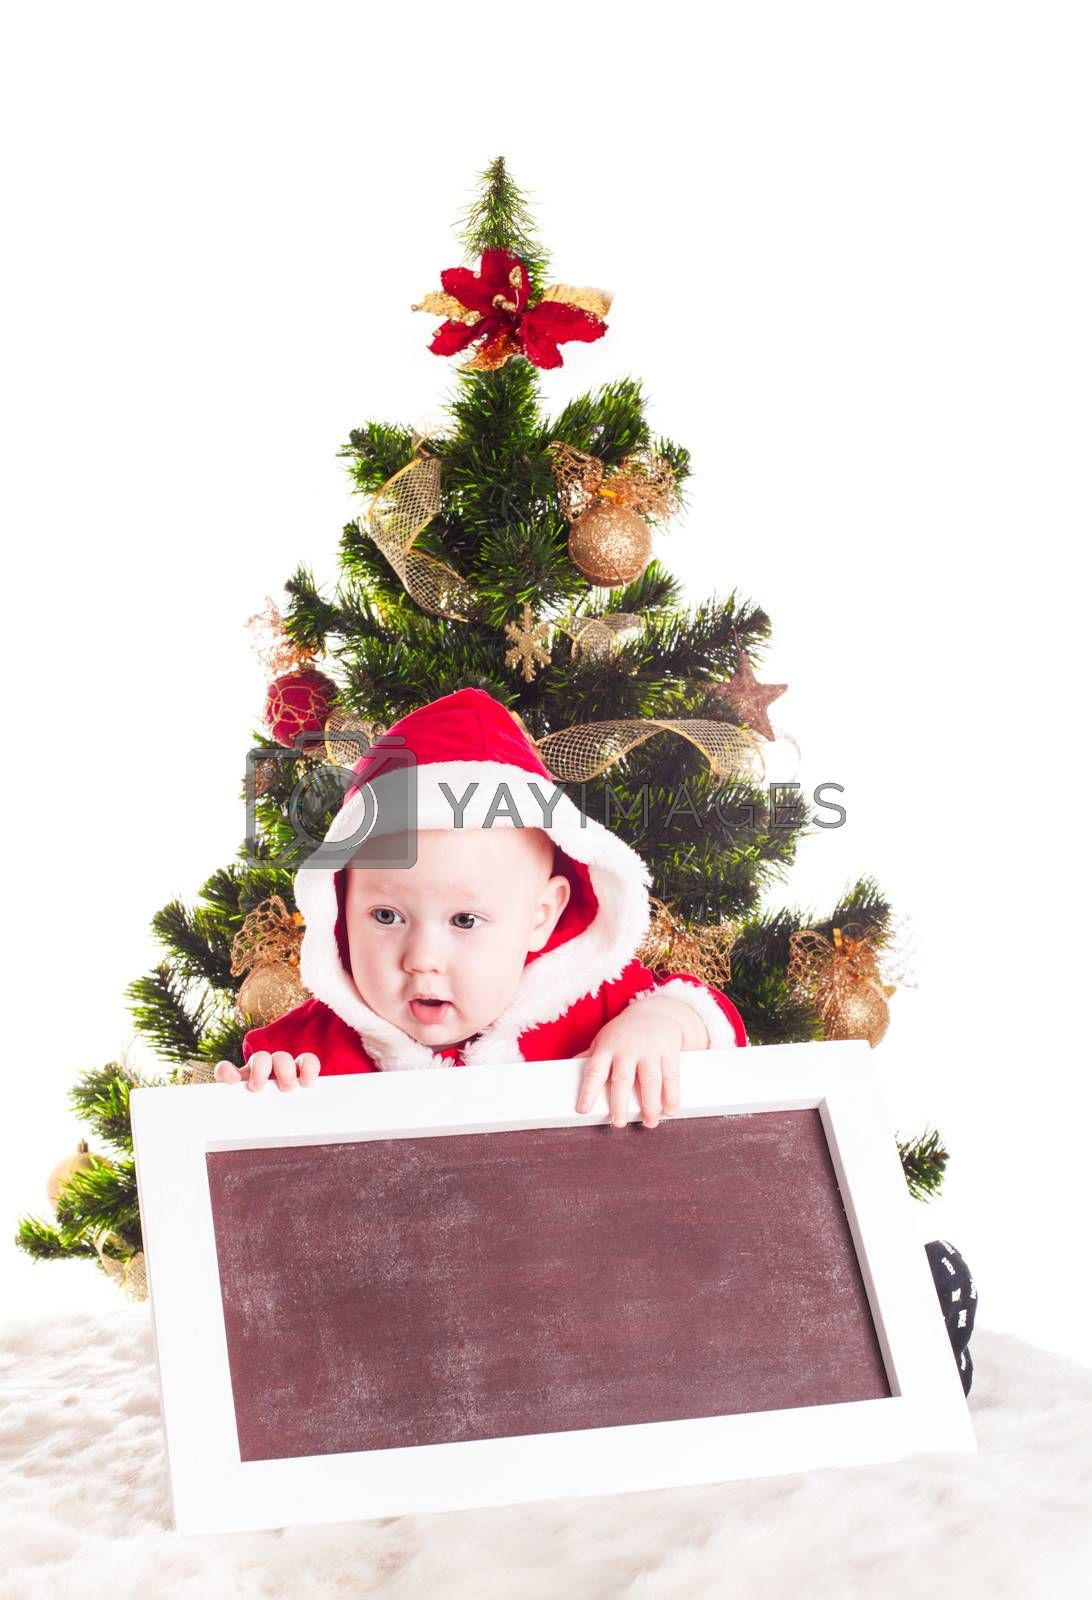 Santa and chalkboard with chritmas tree for greetings